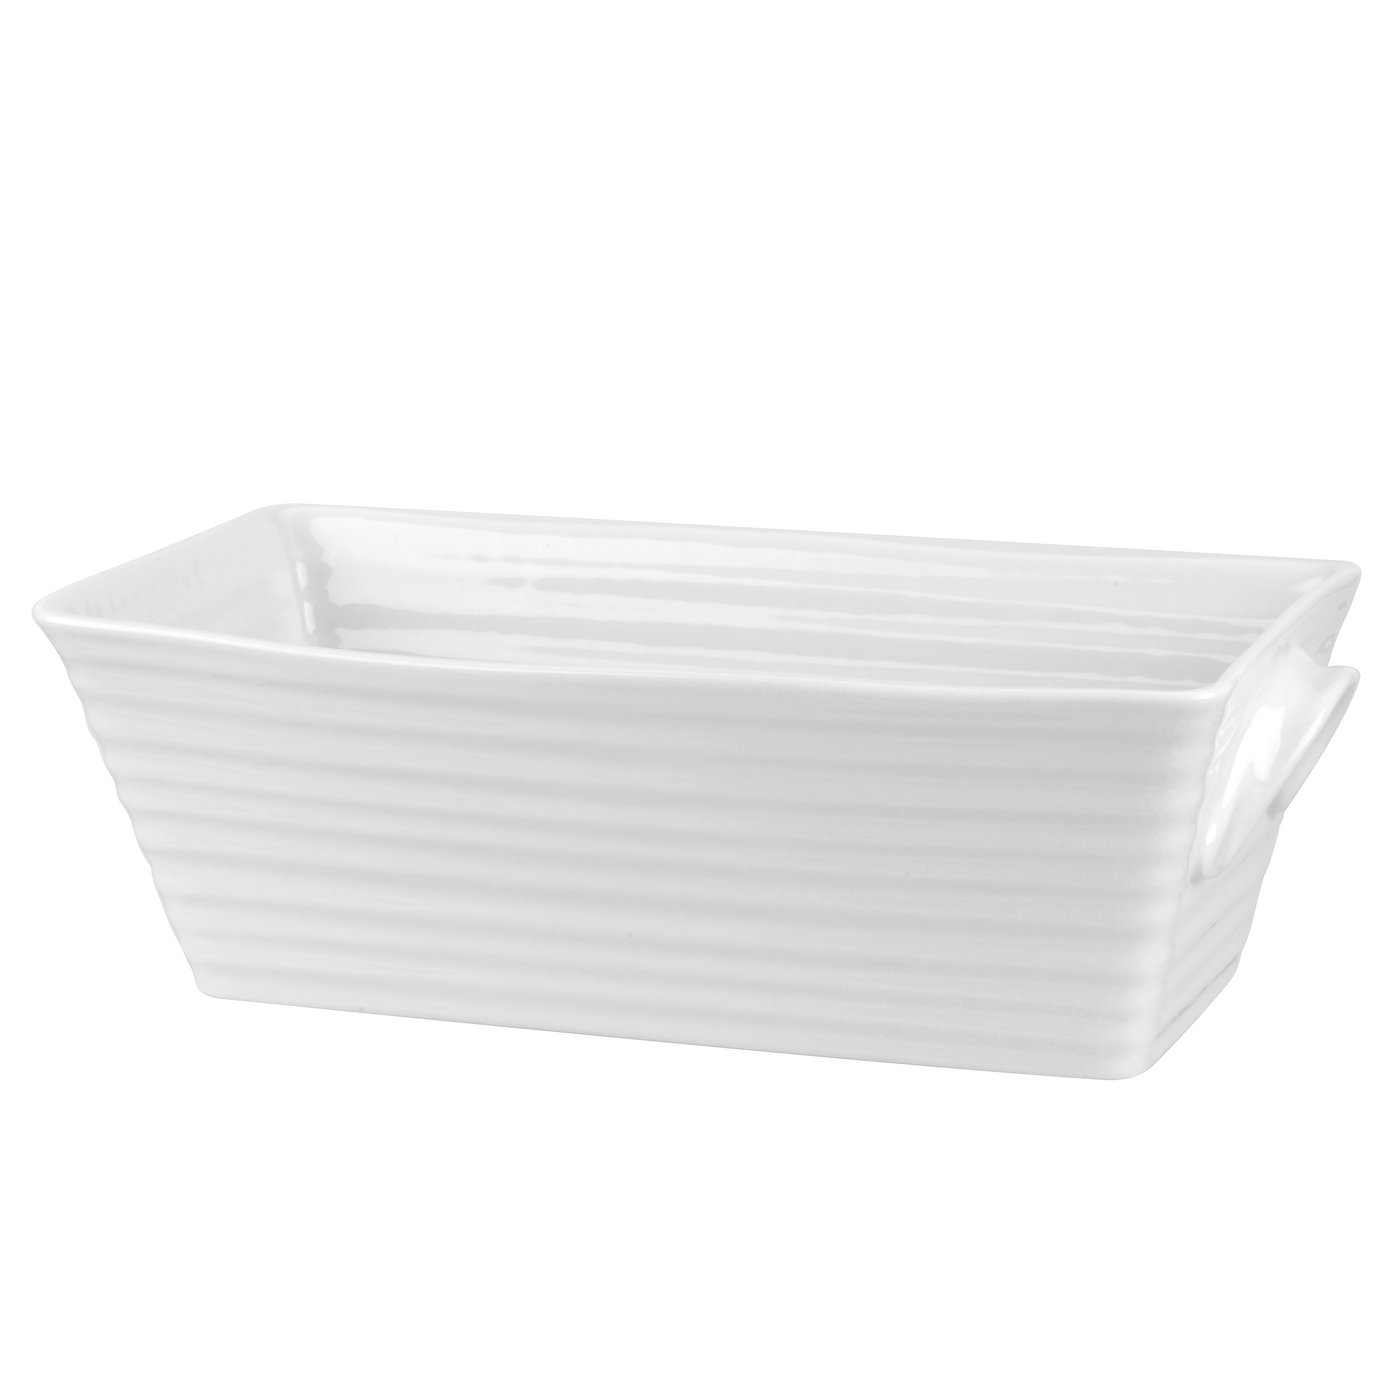 Portmeirion Sophie Conran for Portmeirion White Rectangular Baker image number 0